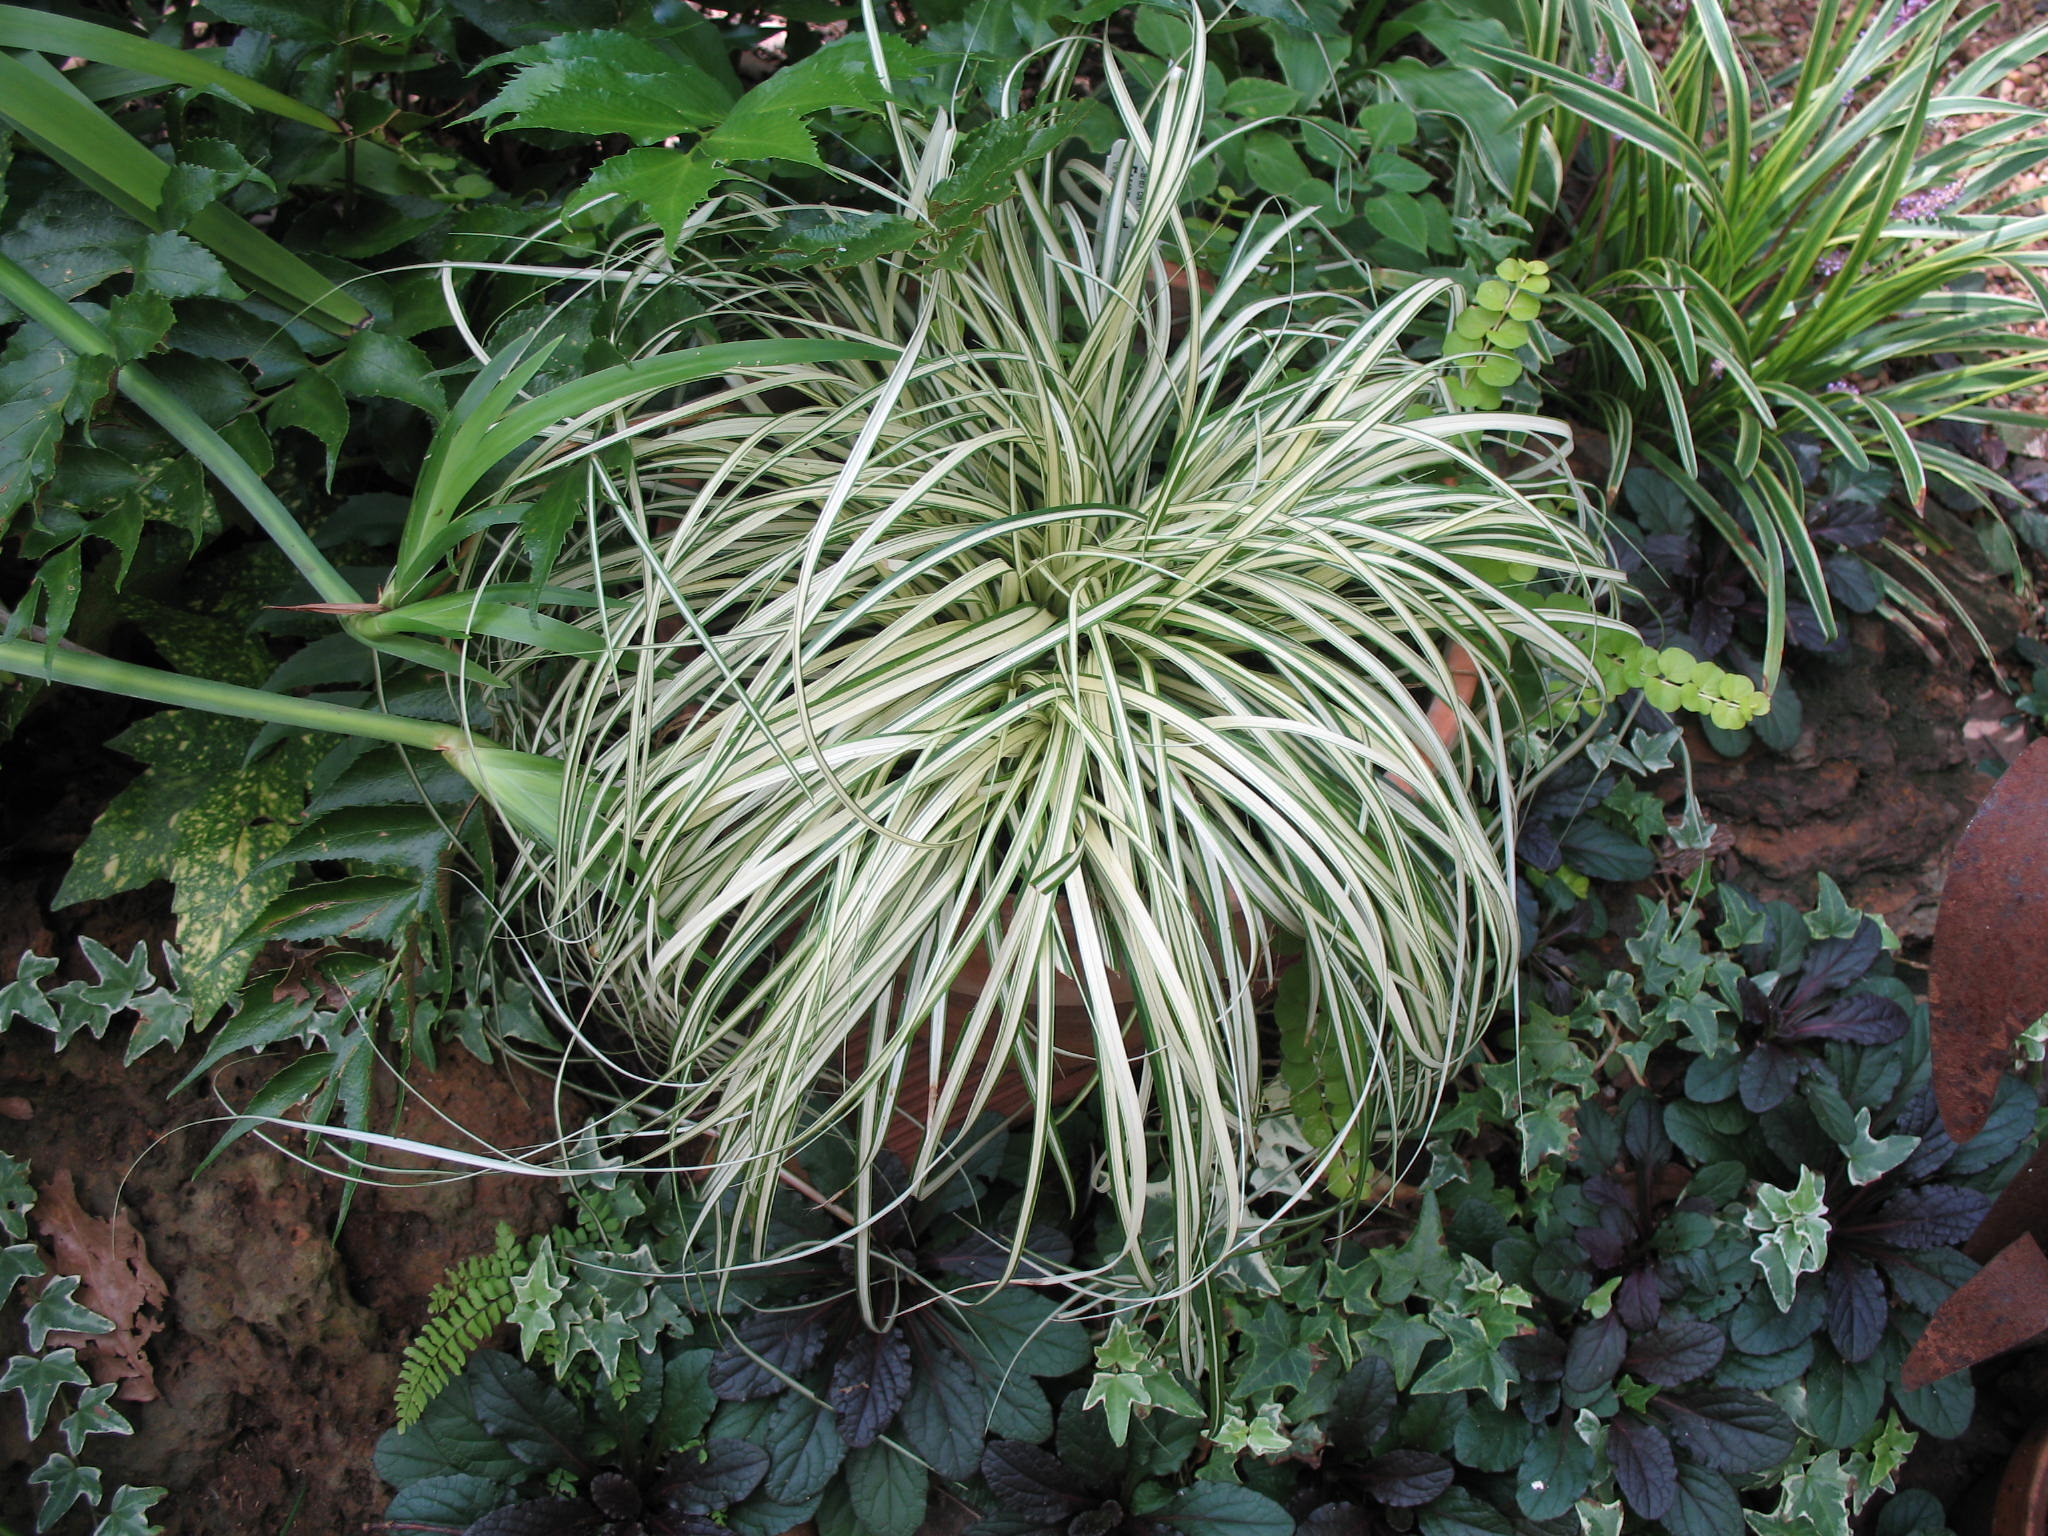 Carex morrowii 'Everbright'   / Carex morrowii 'Everbright'